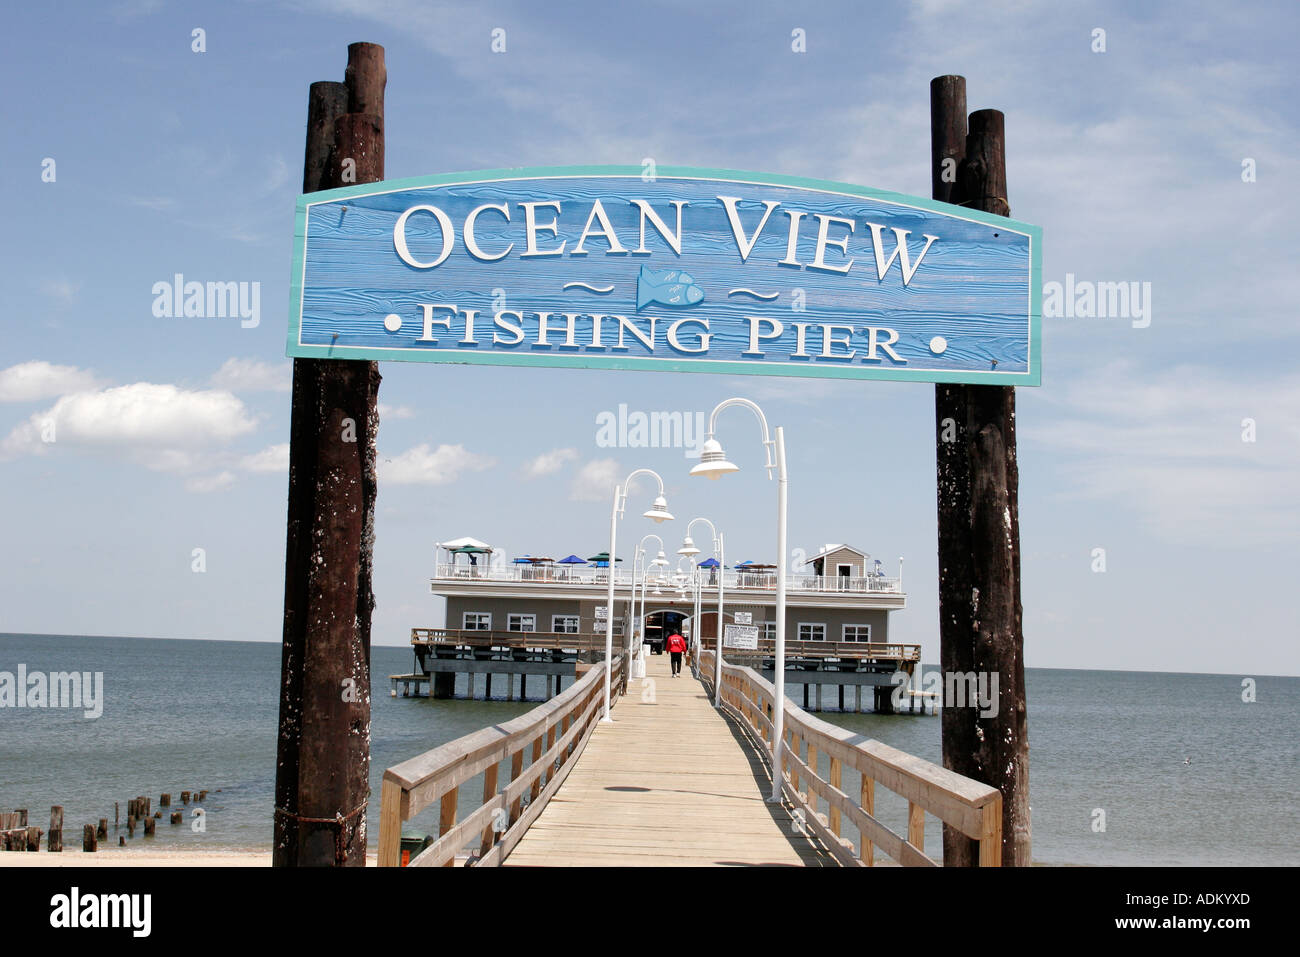 Norfolk Virginia Chesapeake Bay Ocean View Fishing Pier